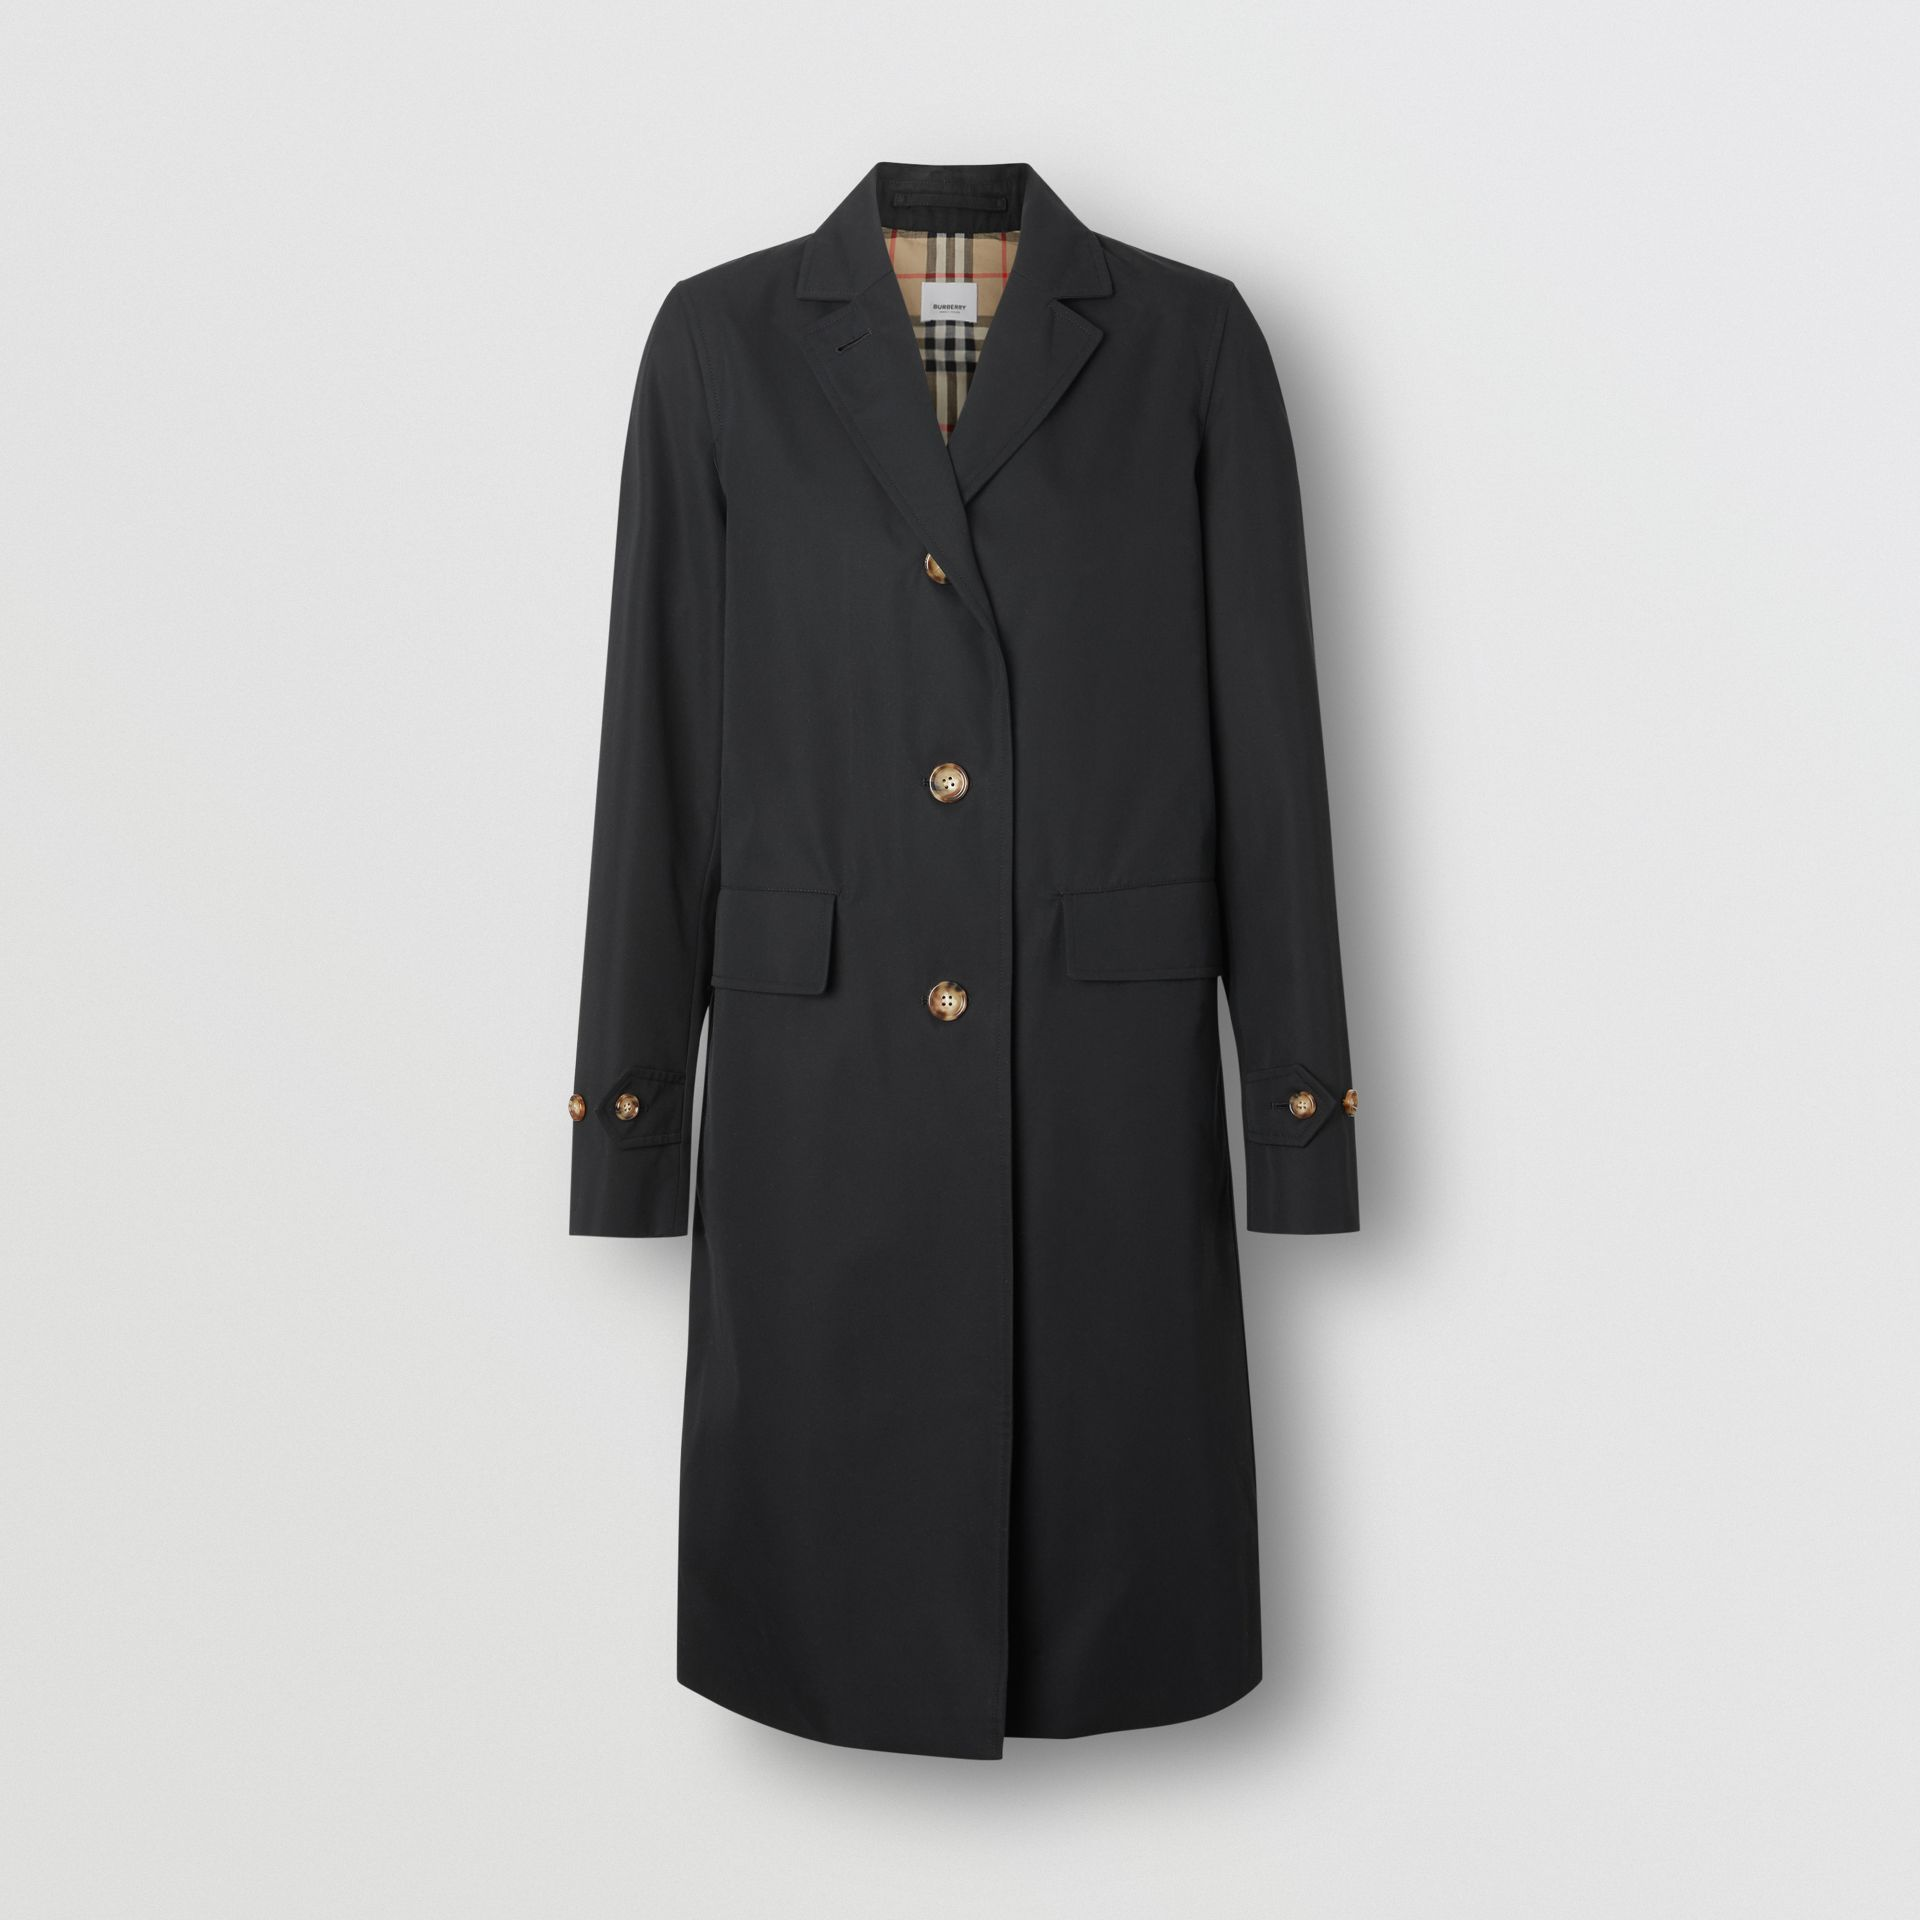 Cotton Gabardine Lab Coat in Black - Women | Burberry Hong Kong S.A.R - gallery image 3